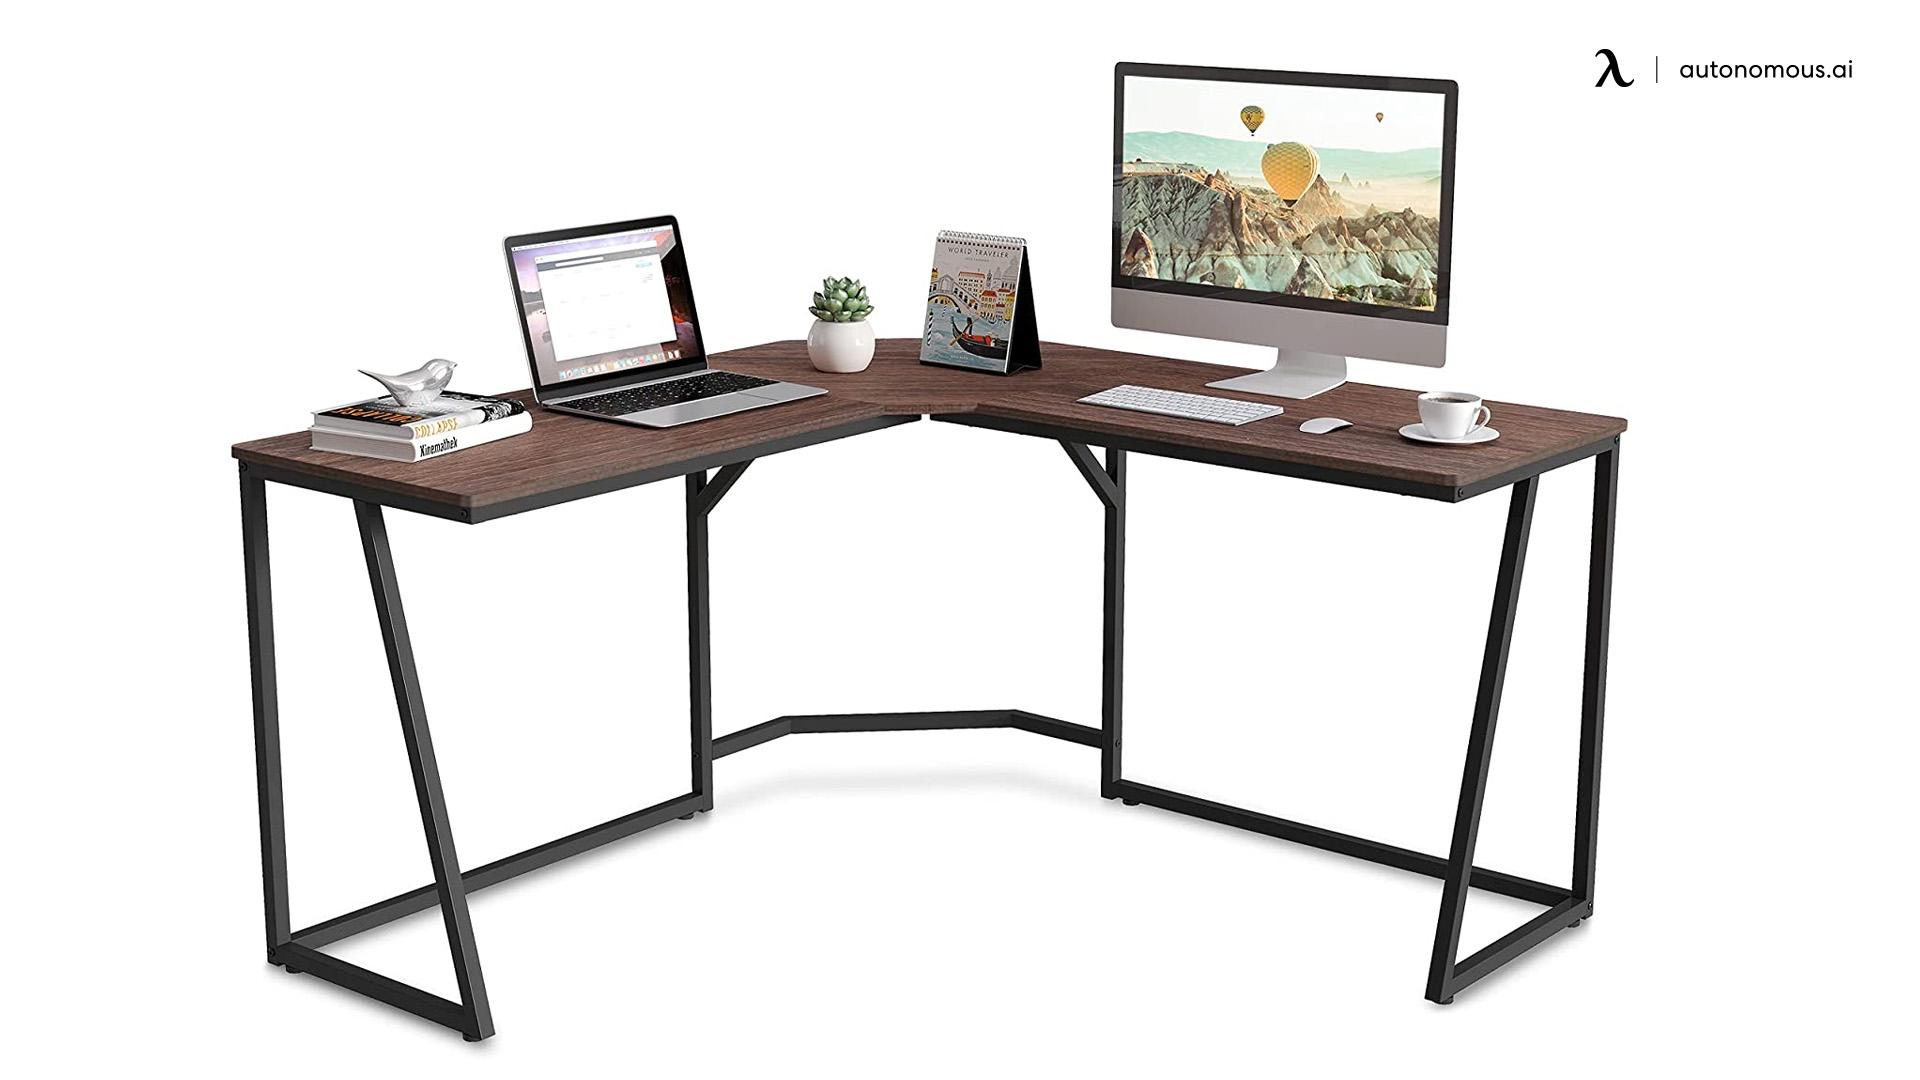 L-shaped computer desk from FituEye